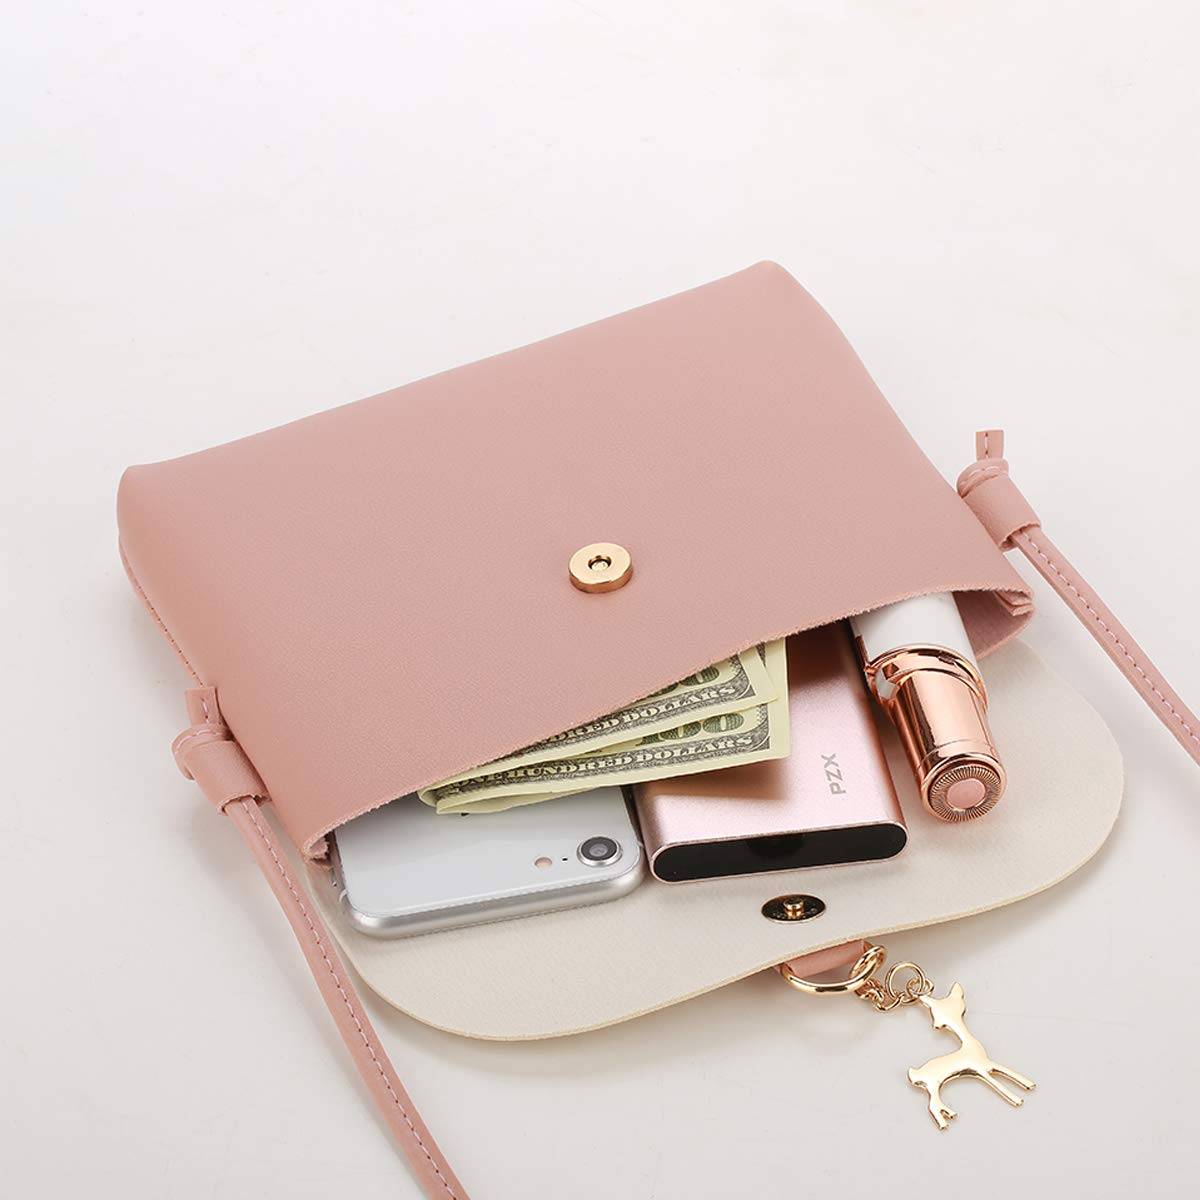 Small Crossbody Purse for Women With Pendant,PU Leather Crossbody Bag With Strap Cell Phone Bag for Girl,Pink by Lanling (Image #4)